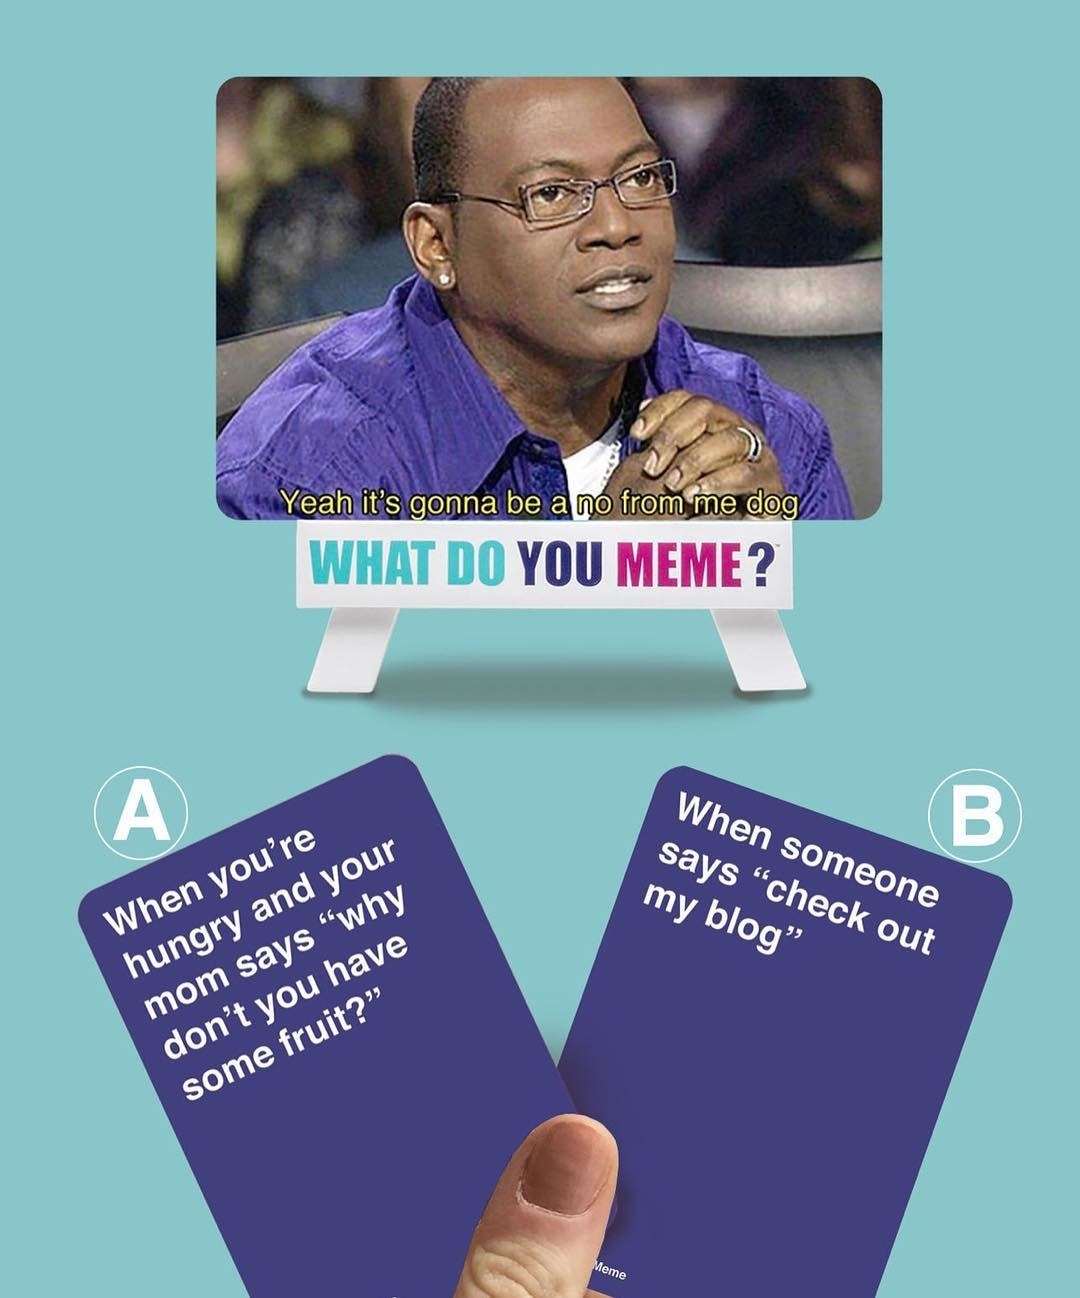 photo of a randy jackson and two meme card options for gameplay